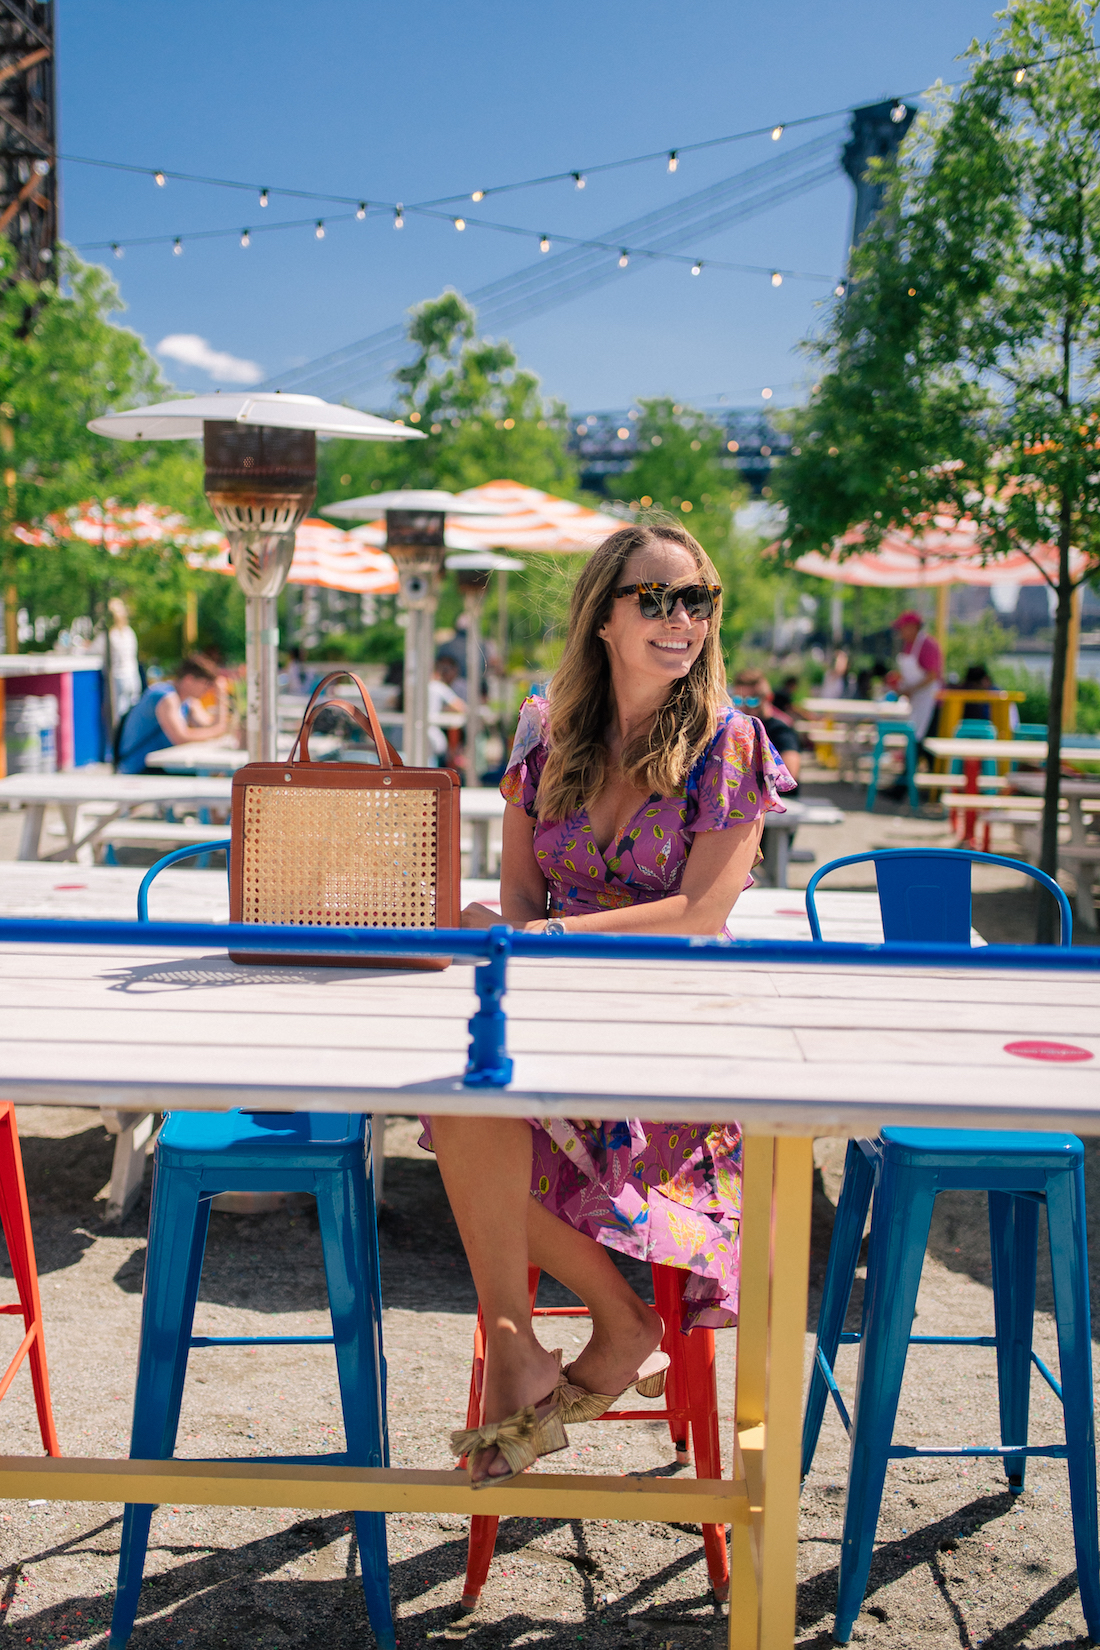 best outdoor bars in nyc and brooklyn include this great spot with colorful chairs